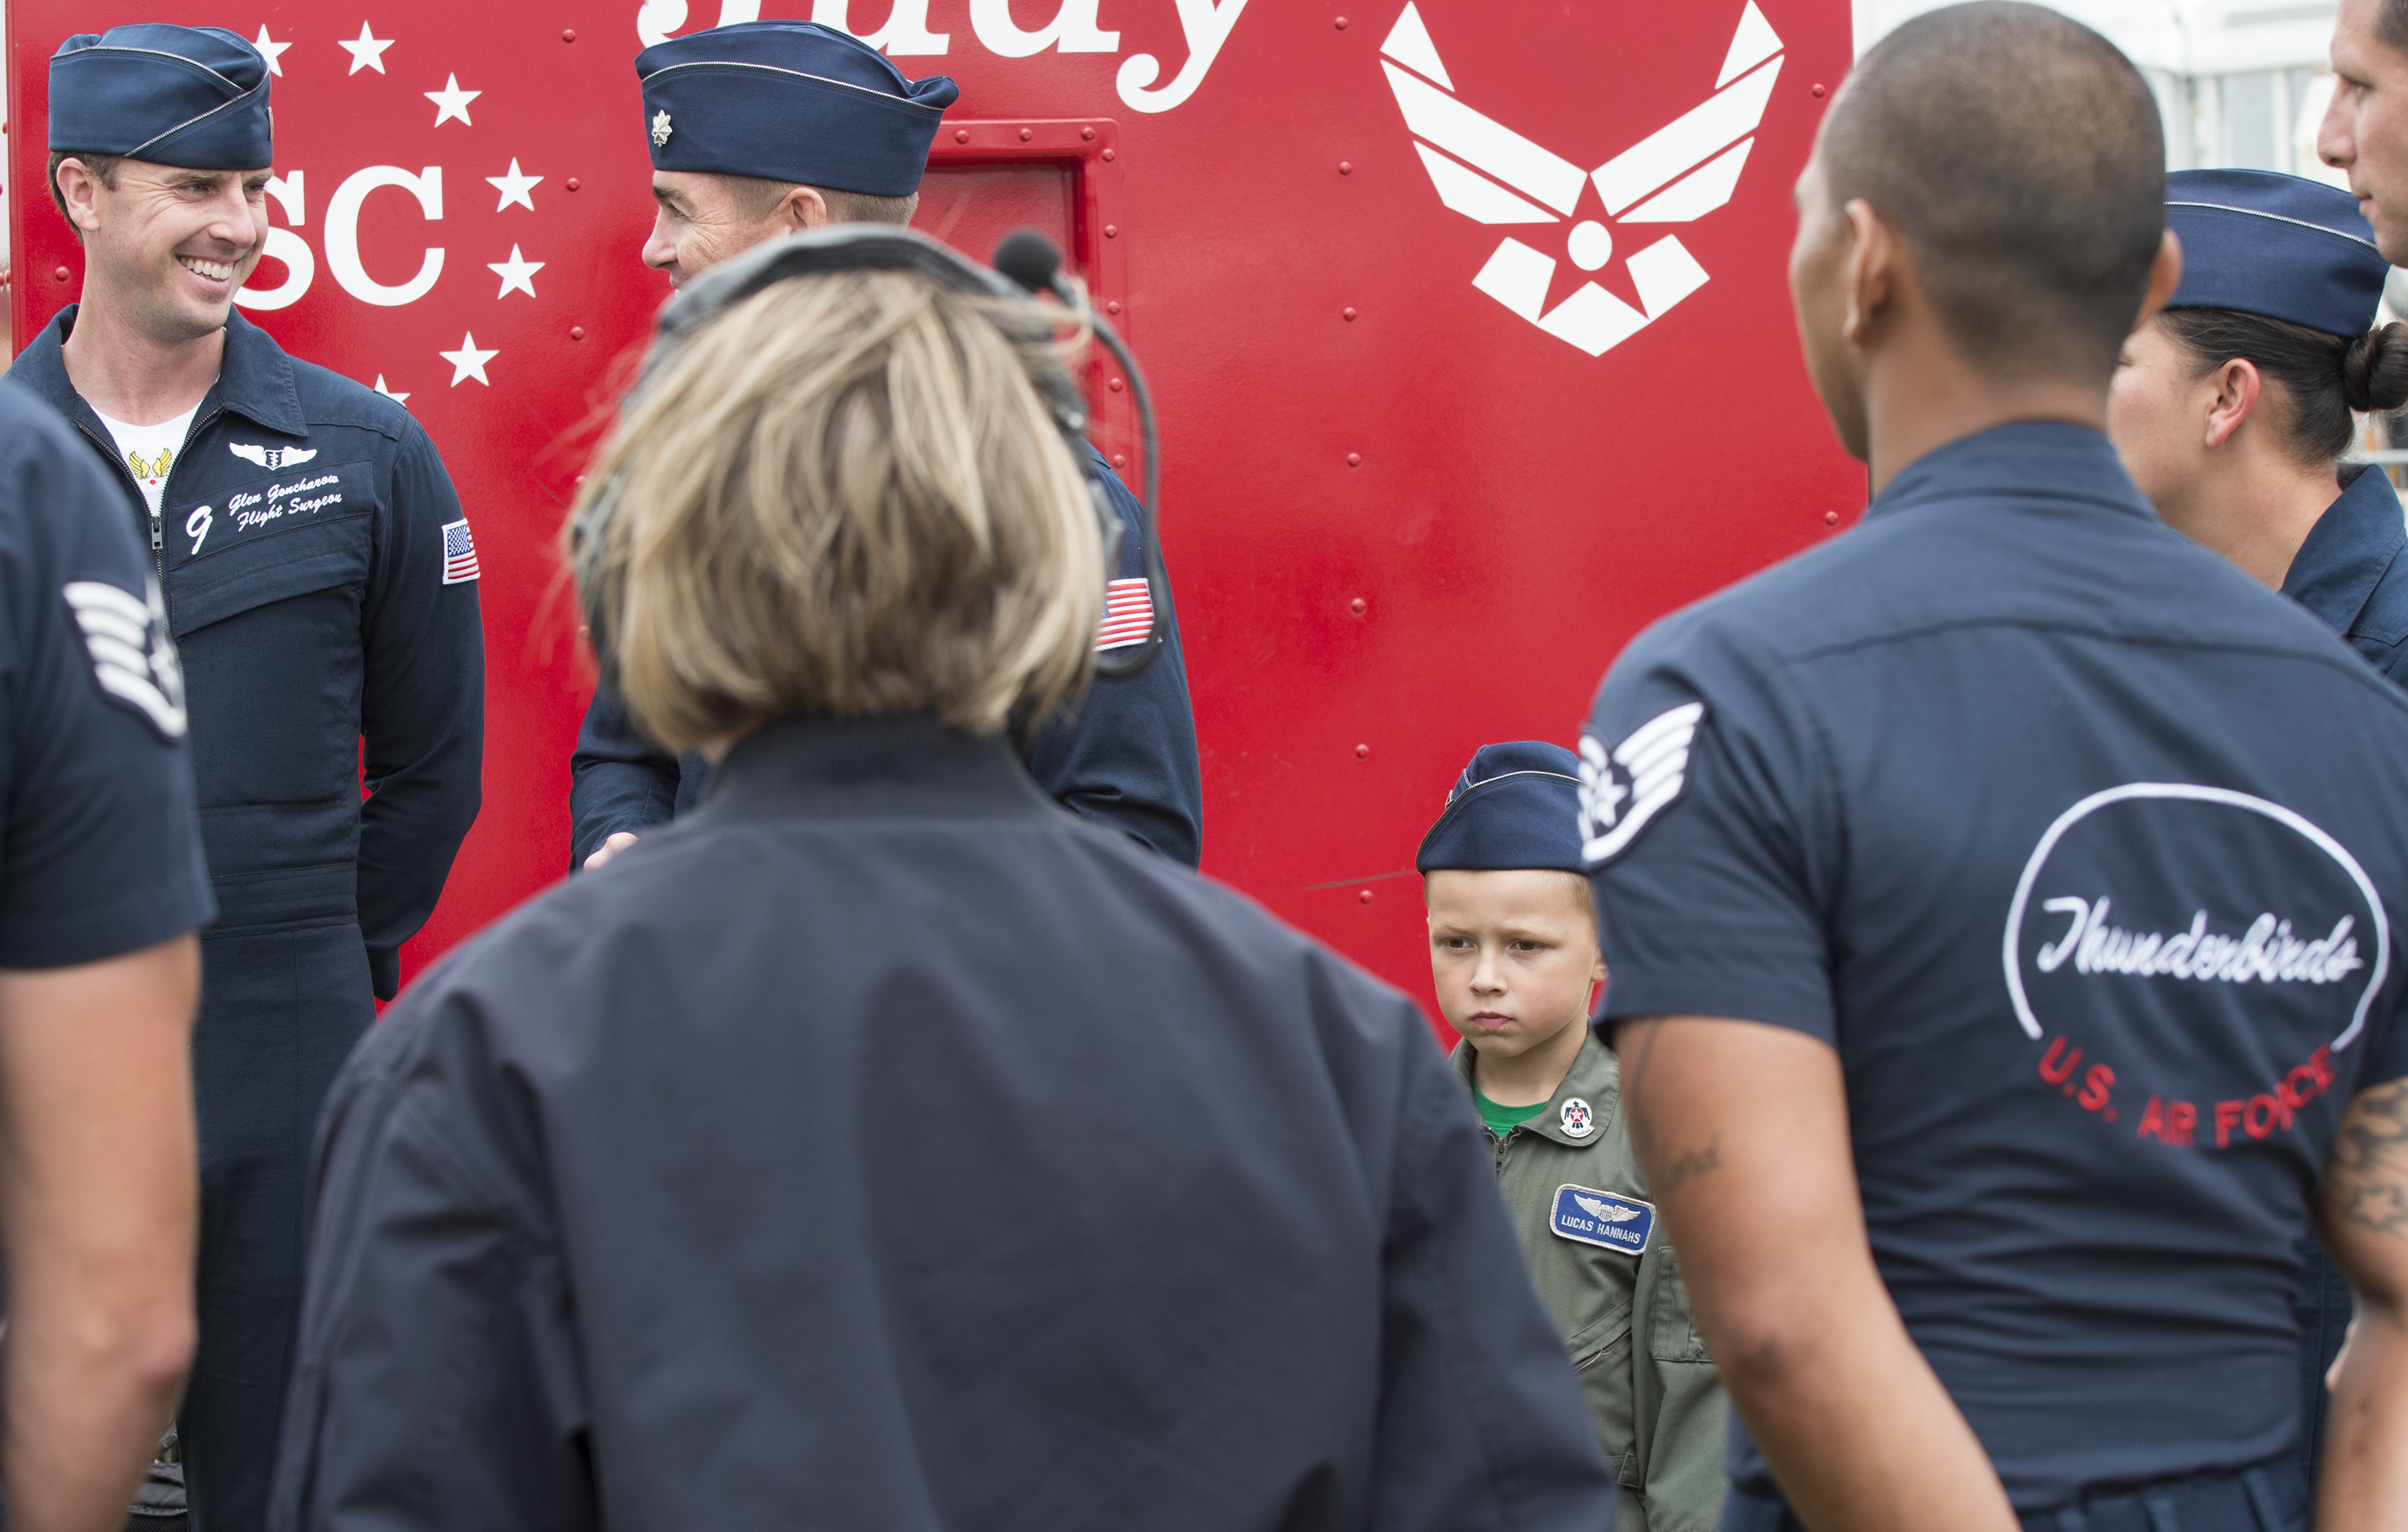 FAIRFORD, United Kingdom –Lucas Hannahs (right), a U.S. Air Force military dependent, stands with members of the U.S. Air Force Thunderbird aeronautical team during the 2017 Royal International Air Tattoo (RIAT) located at RAF Fairford, United Kingdom, on July 15, 2017. This year commemorates the U.S. Air Force's 70th Anniversary which was highlighted during RIAT by displaying its lineage and advancements in military aircraft. (U.S. Air Force Photo by Tech. Sgt. Brian Kimball)